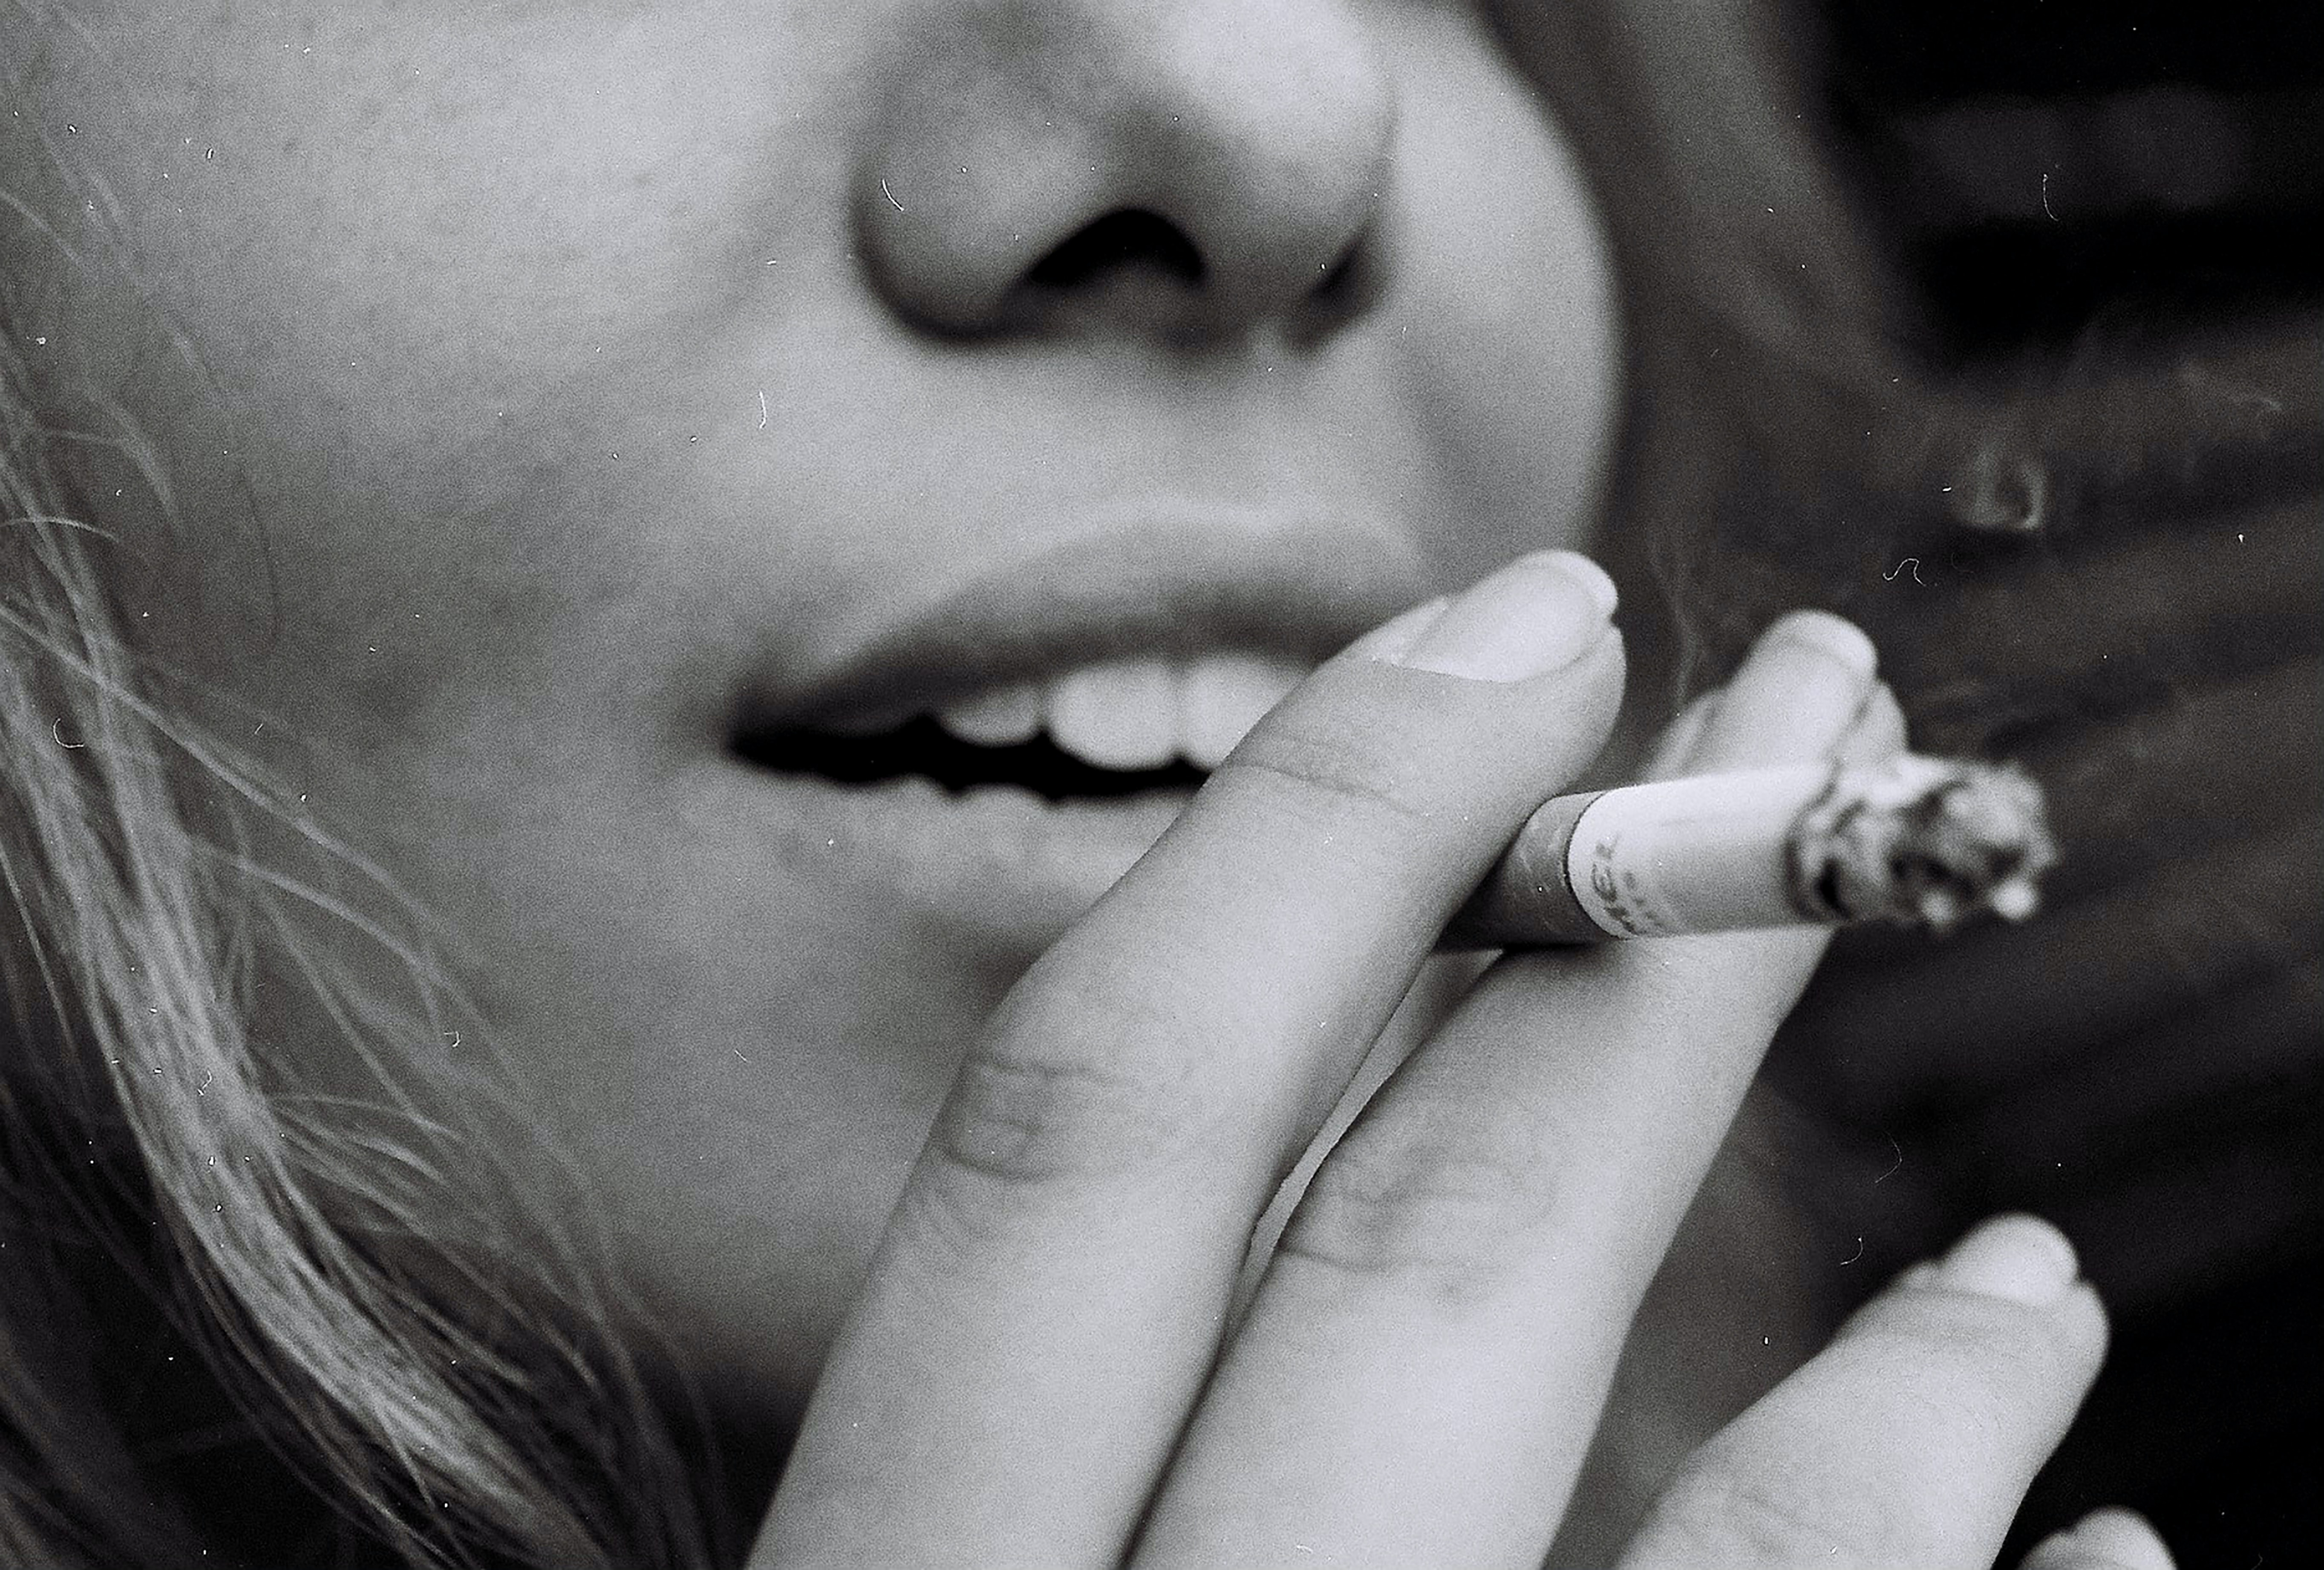 greyscale photo of woman smoking cigarette